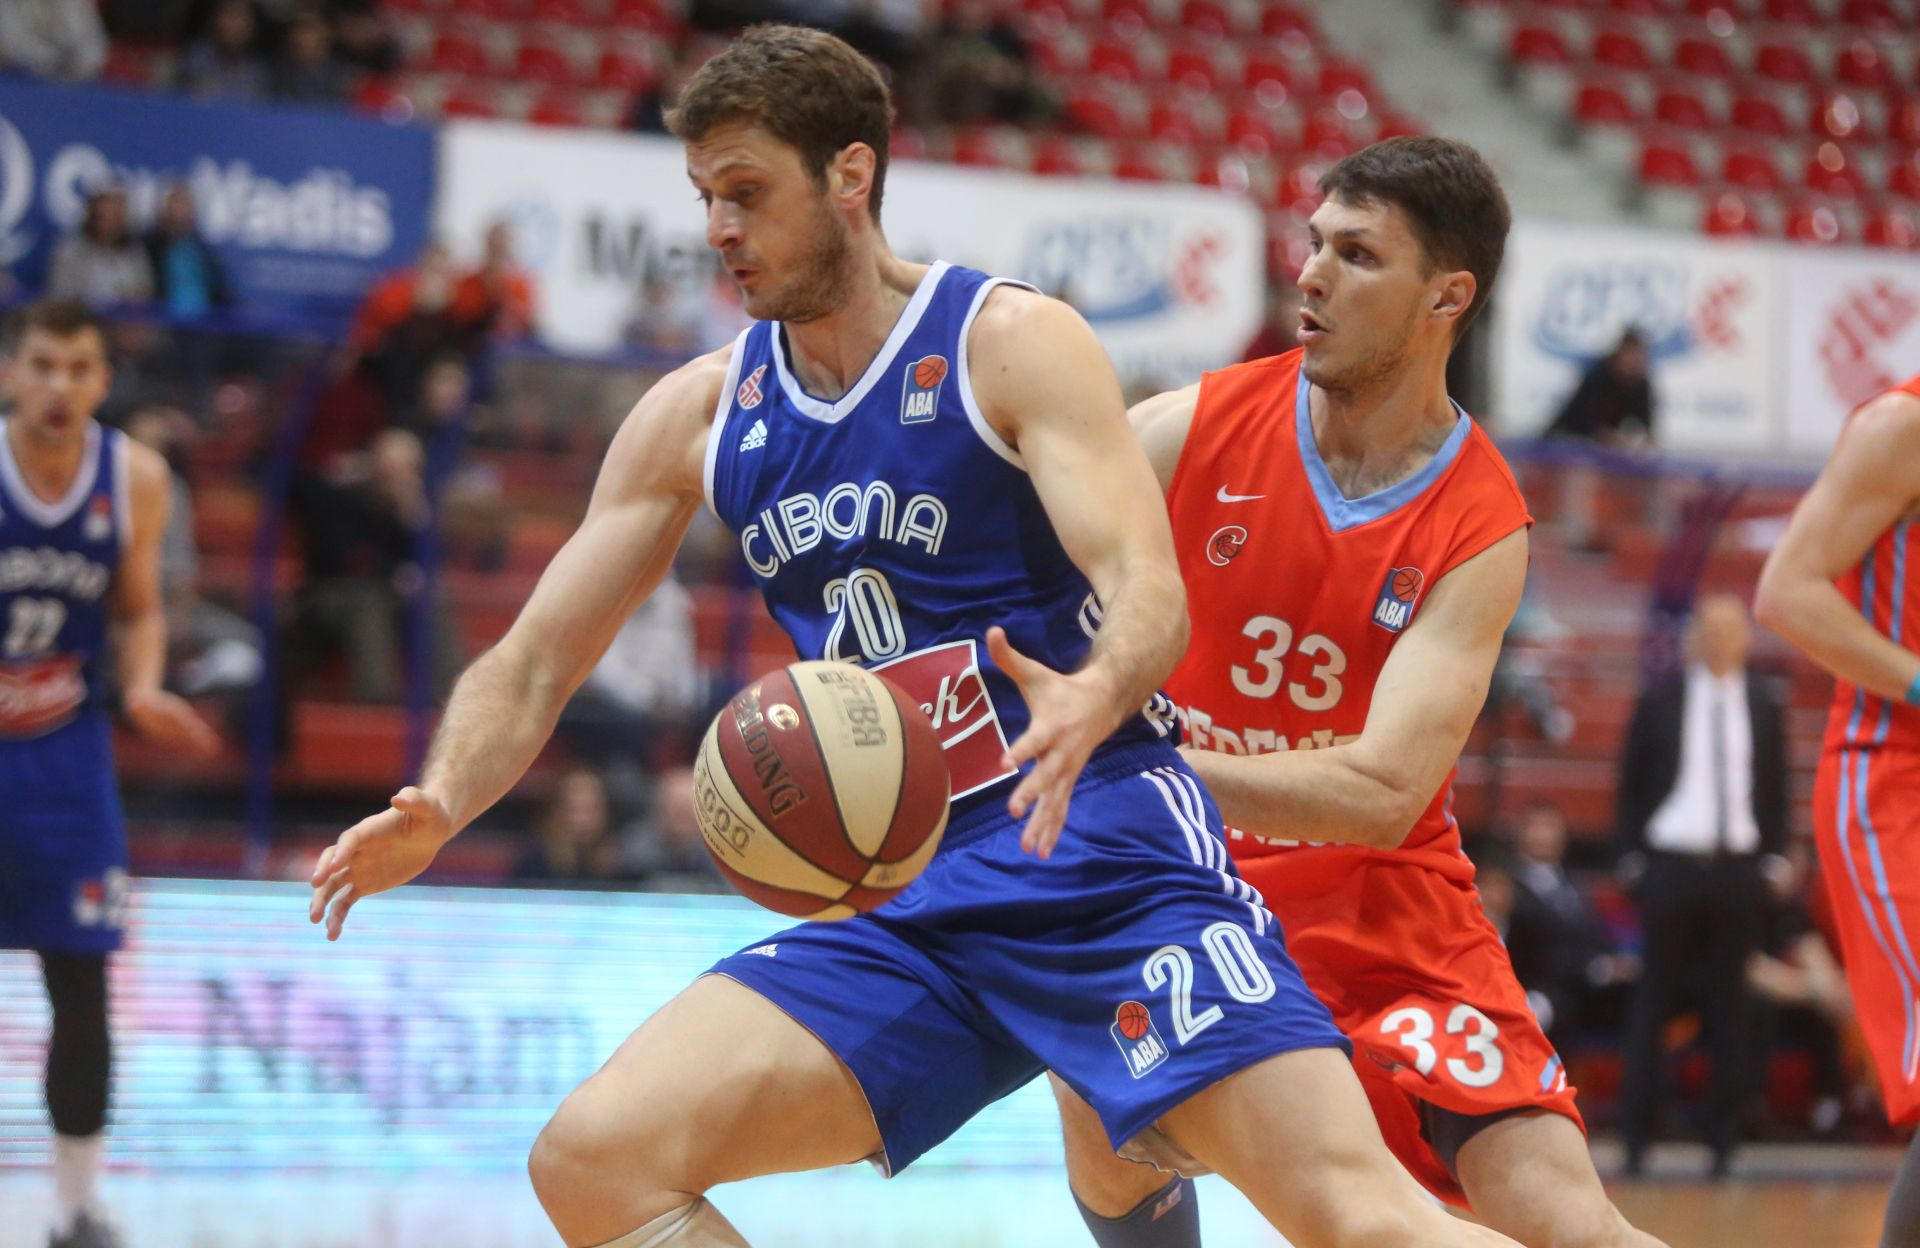 Cibona VS Cedevita  BETTING TIPS (17-05-2017)